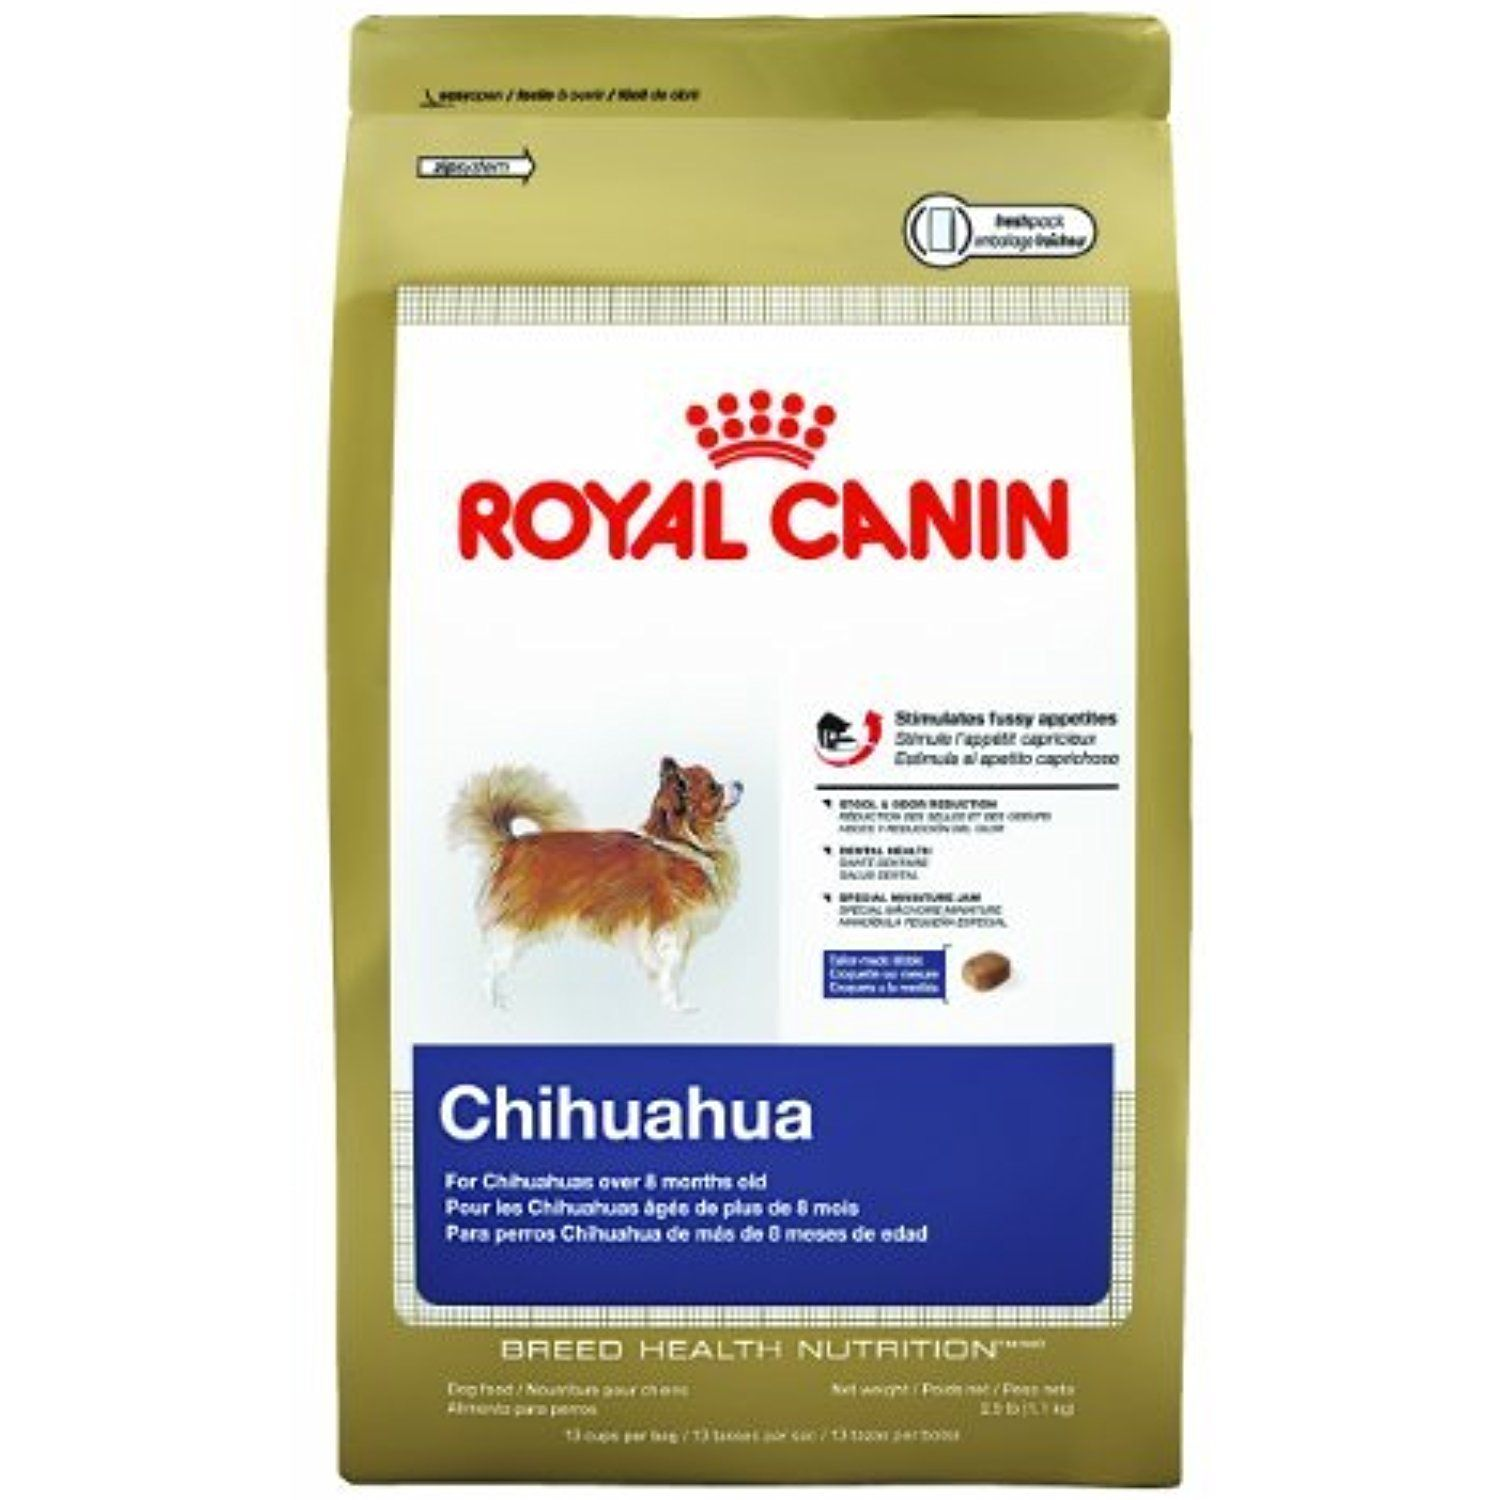 Royal Canin Chihuahua Dry Dog Food 10 Pound By Royal Canin You Can Find Out More About The Great Product At Dry Dog Food Dog Food Recipes Best Dry Dog Food